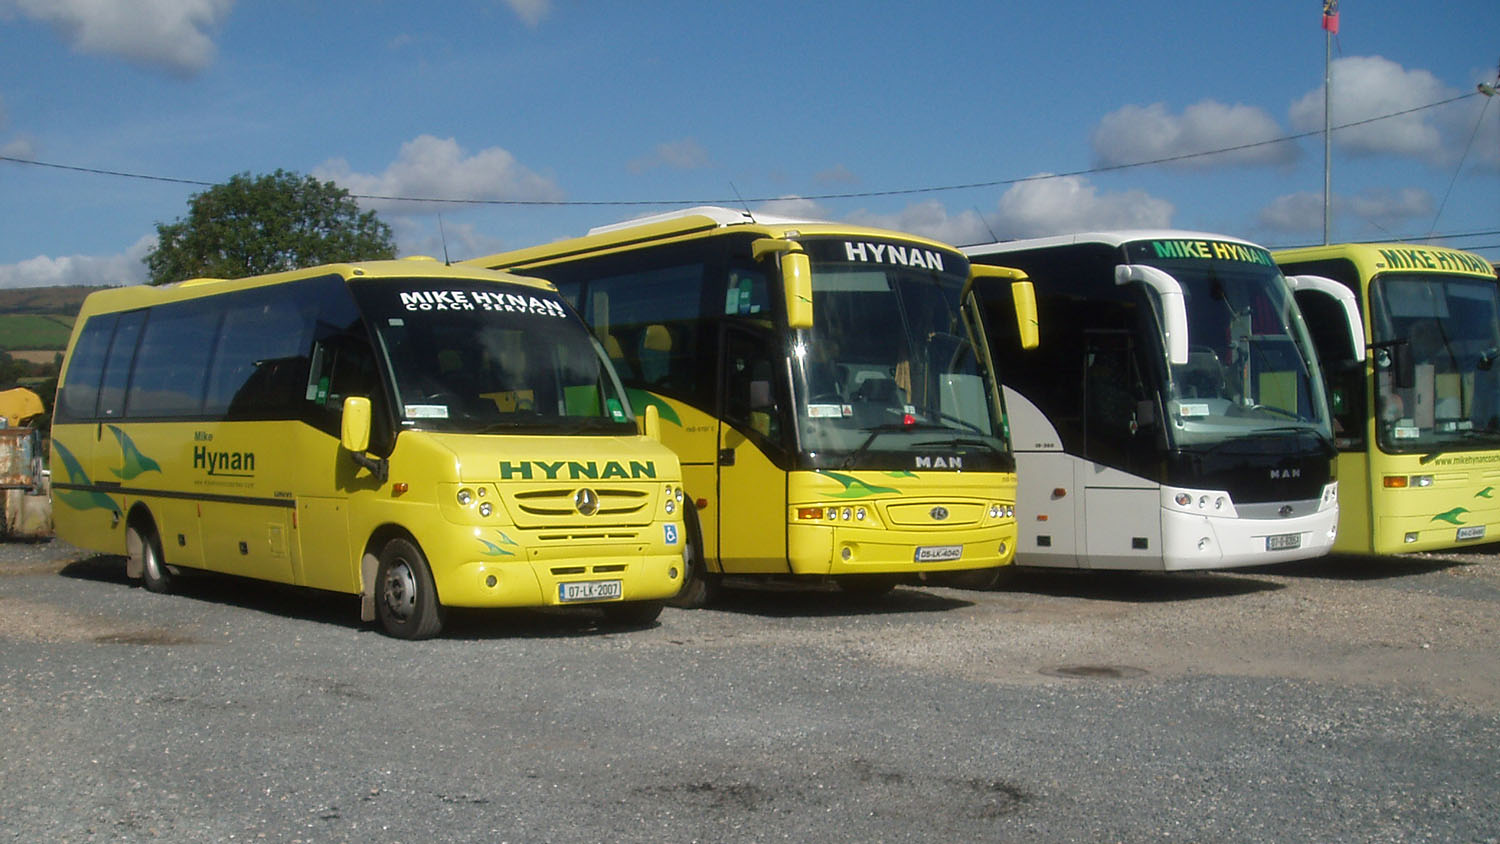 Fleet of coaches